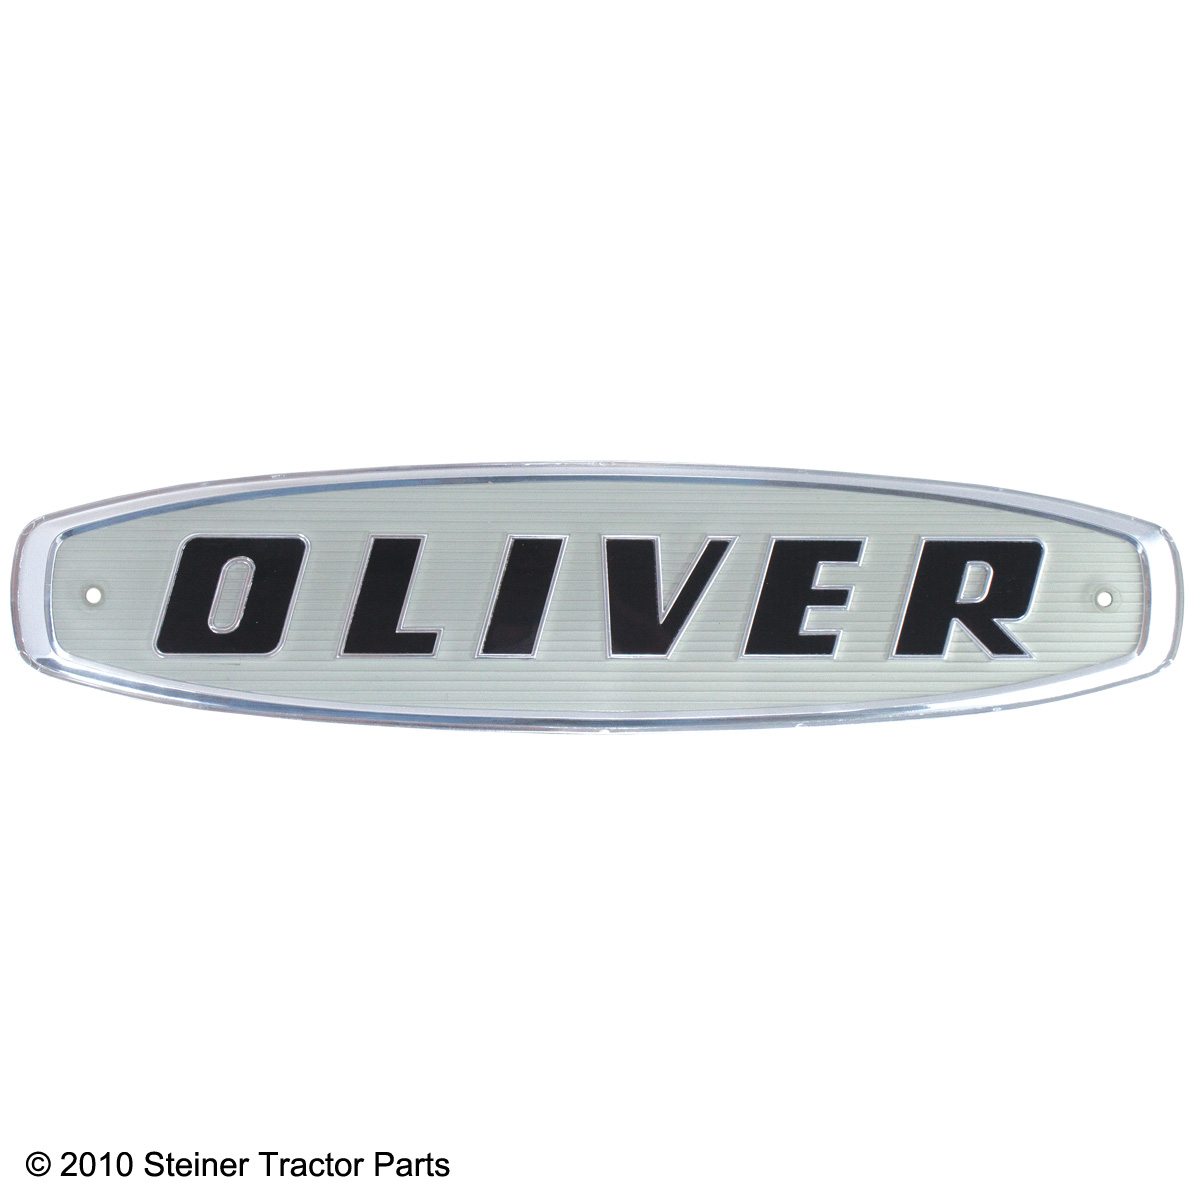 Brand new front emblem for the following models: Oliver 550, 770, 880, 950, 990 and 995 (1962 and up)  Black letters on a white background with silver trim.  Replaces: 101430A